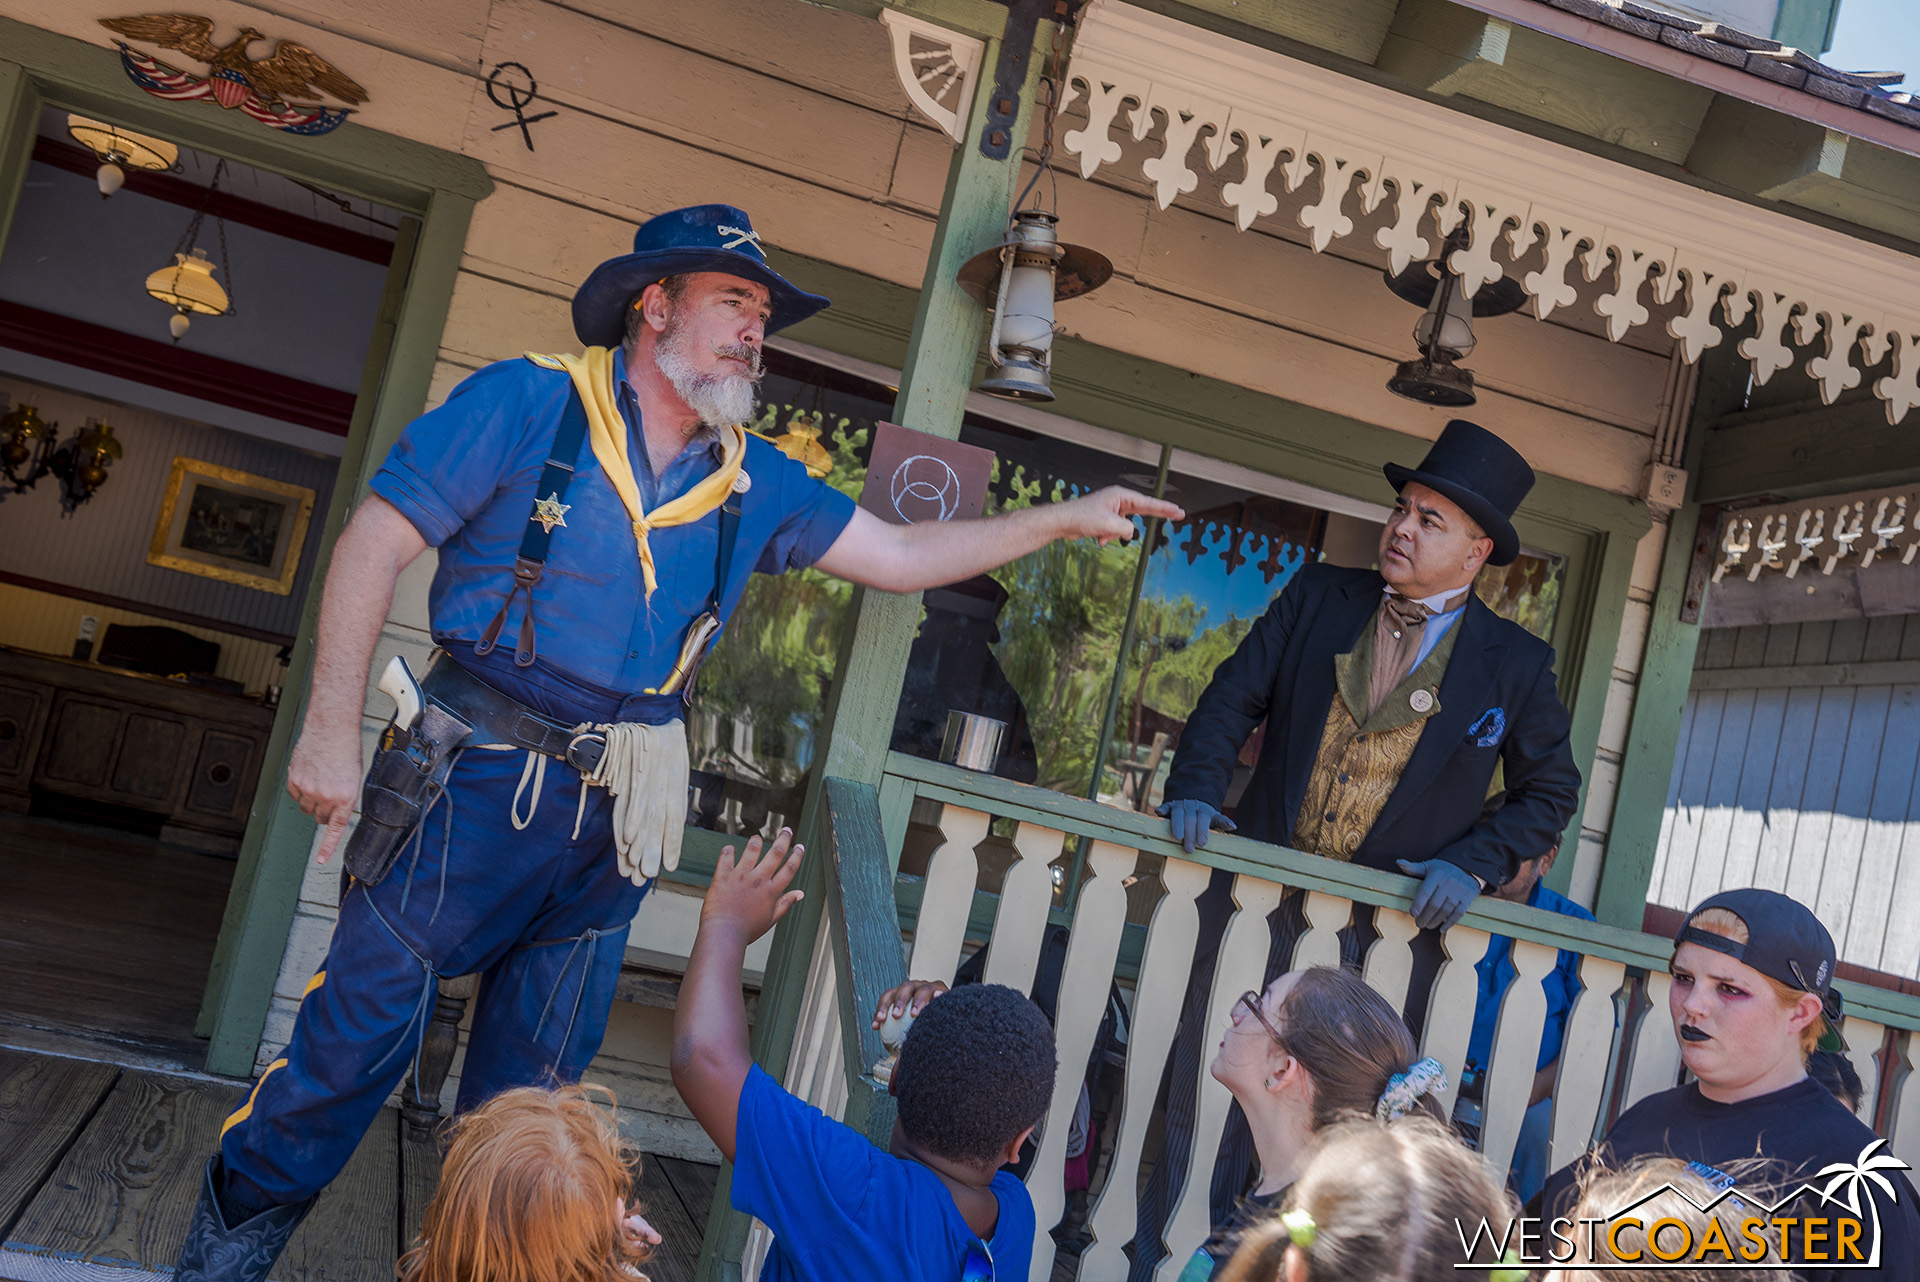 Col. Hudson admonishes the townsfolk and expresses his new worry that everyone seems to be so half-brained that they'll be picked off by the next serious and qualified group of bad-doers who walk through, such as the Mad Bucks Gang!